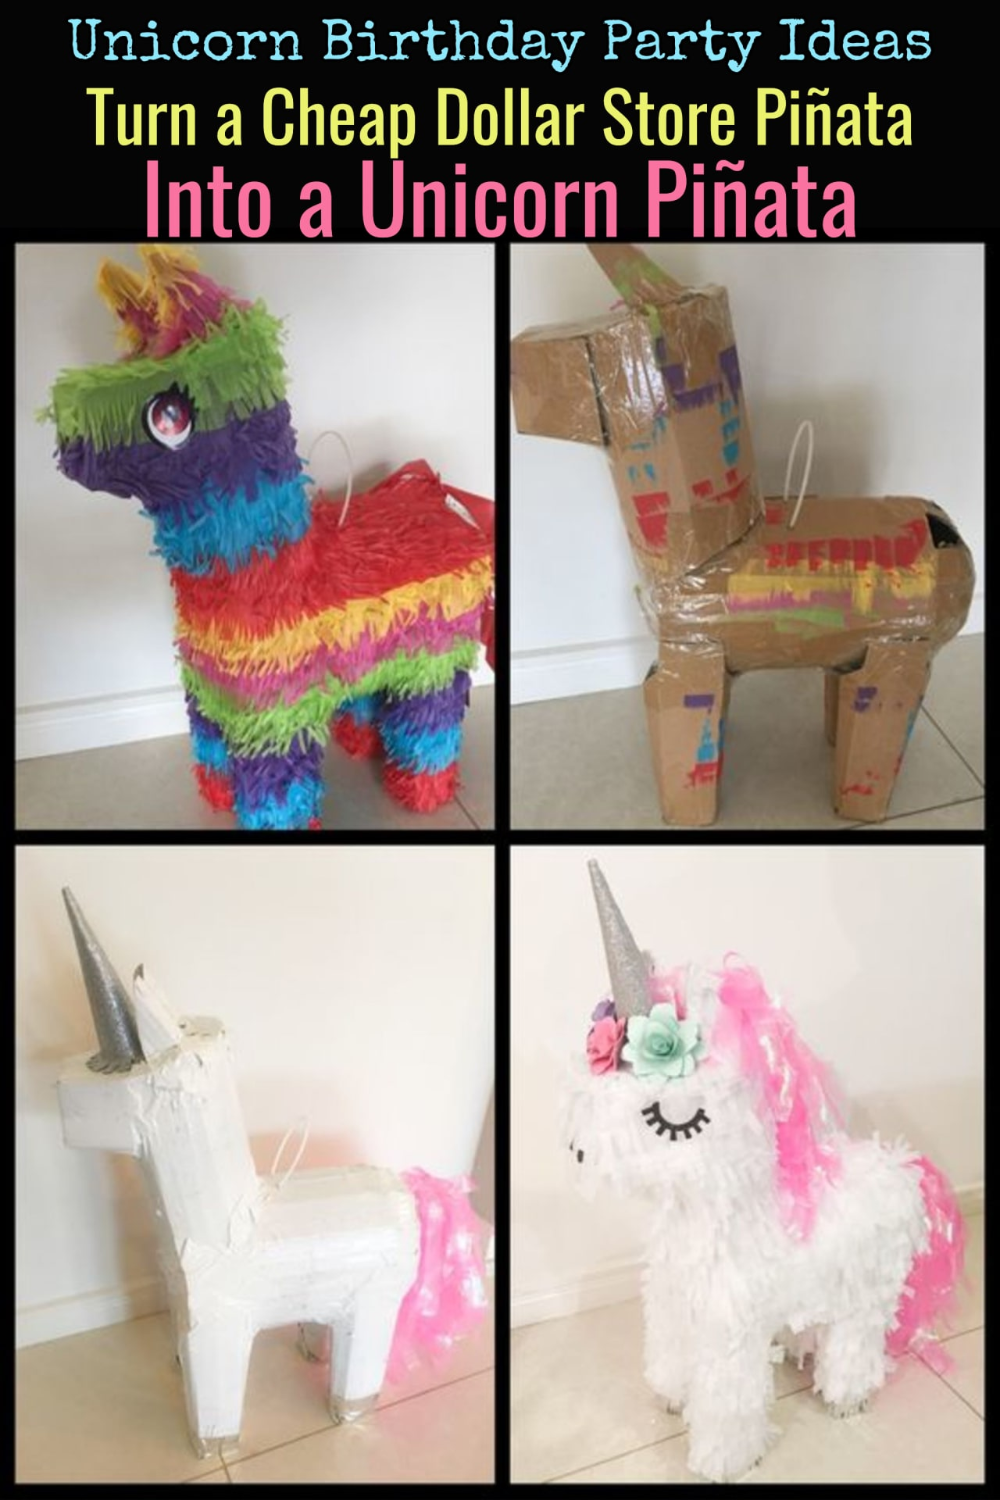 Unicorn Crafts for Kids - Cute & Easy DIY Unicorn Craft Ideas - Involvery #unicorncrafts